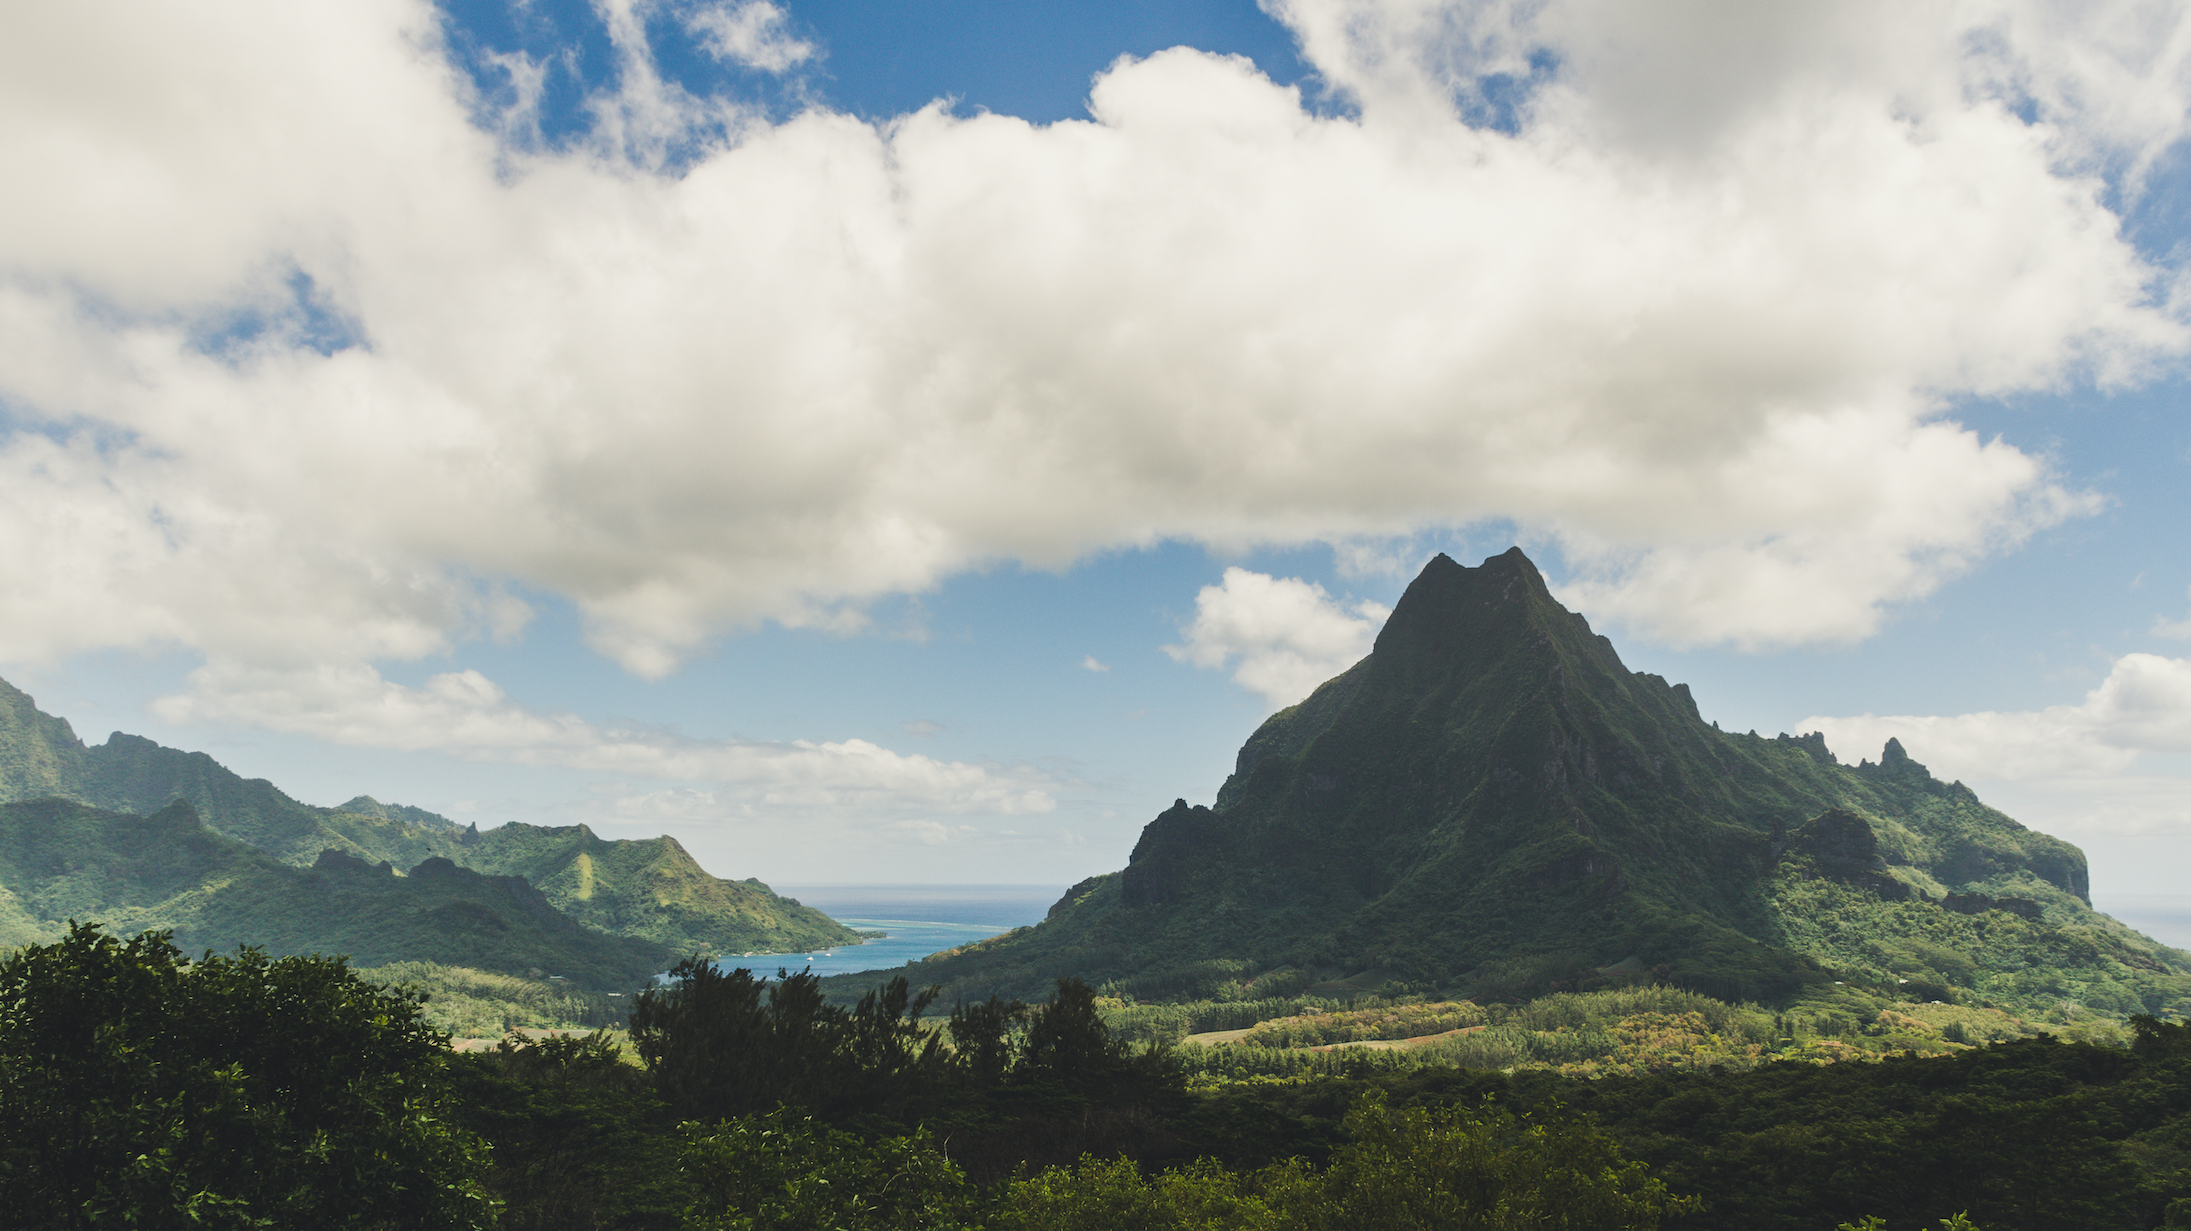 Moorea's Belvedere Lookout. Photo by Flash Parker, with the Nikon D7500 and AF-S NIKKOR 18-140mm  f/3.5-5.6G ED VR lens.